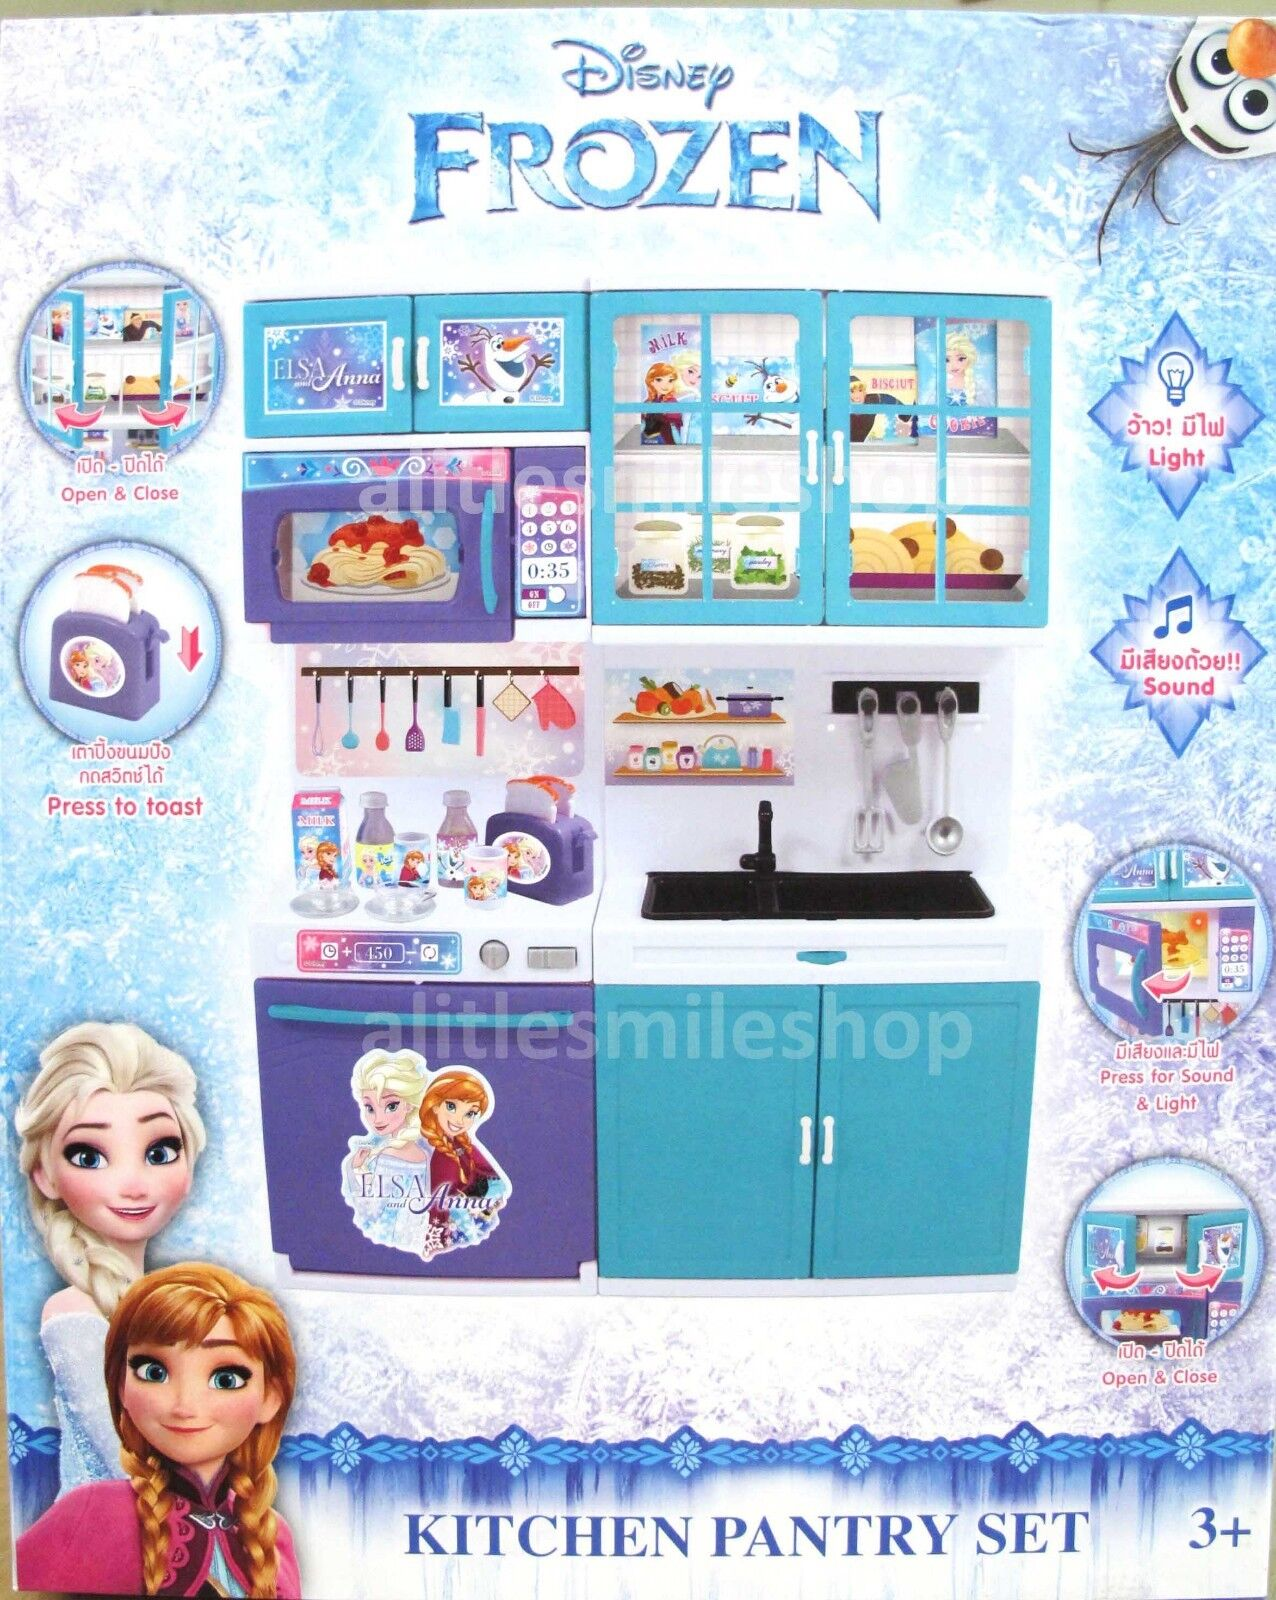 Ean 8858740423359 Disney Frozen Elsa Anna Kitchen Pantry Set Kids